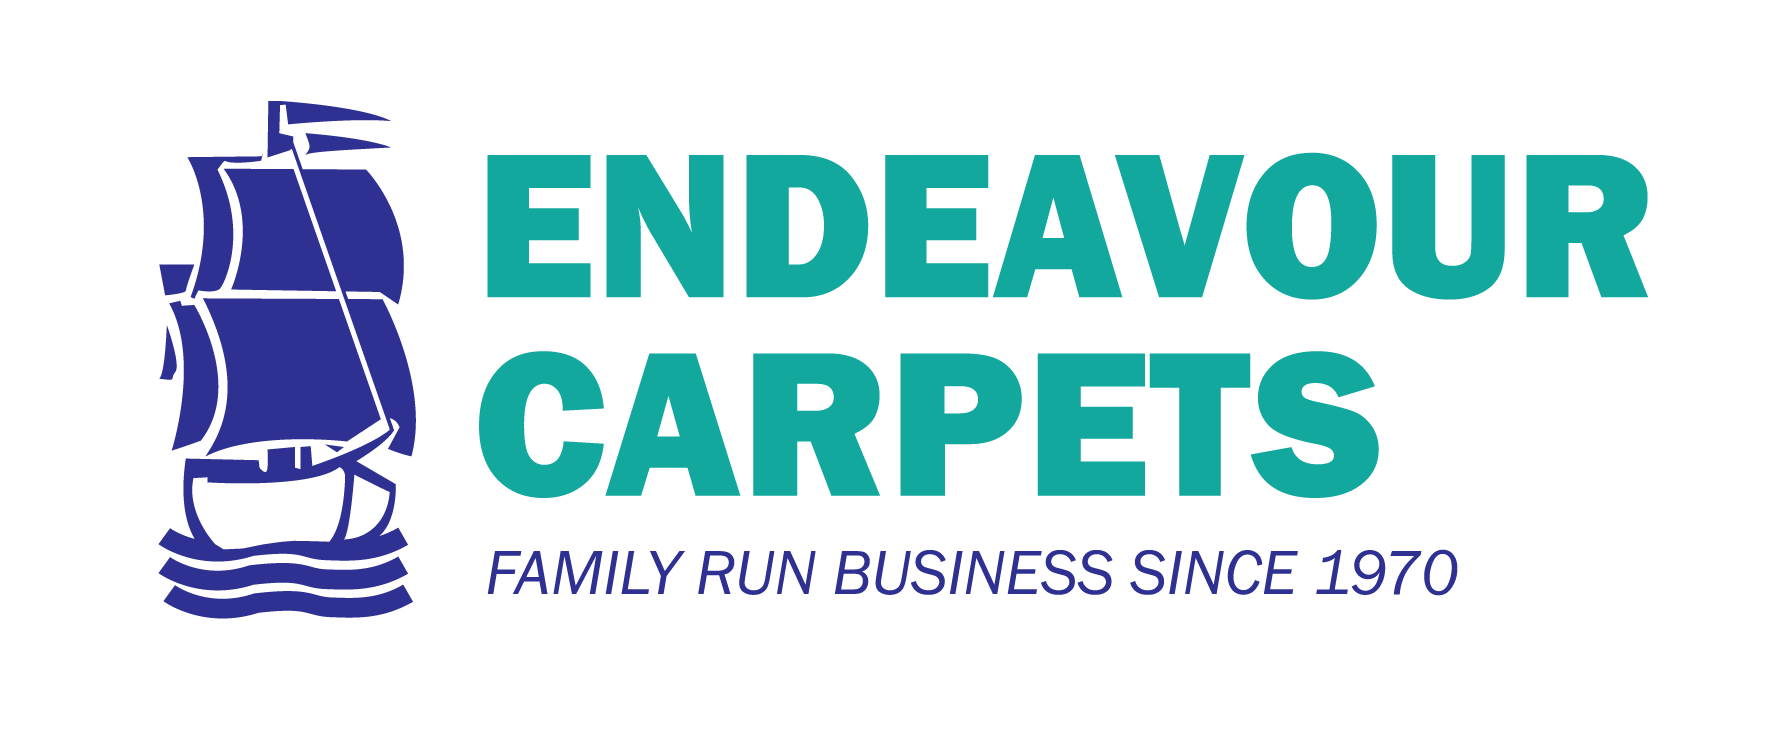 Endeavour Carpets